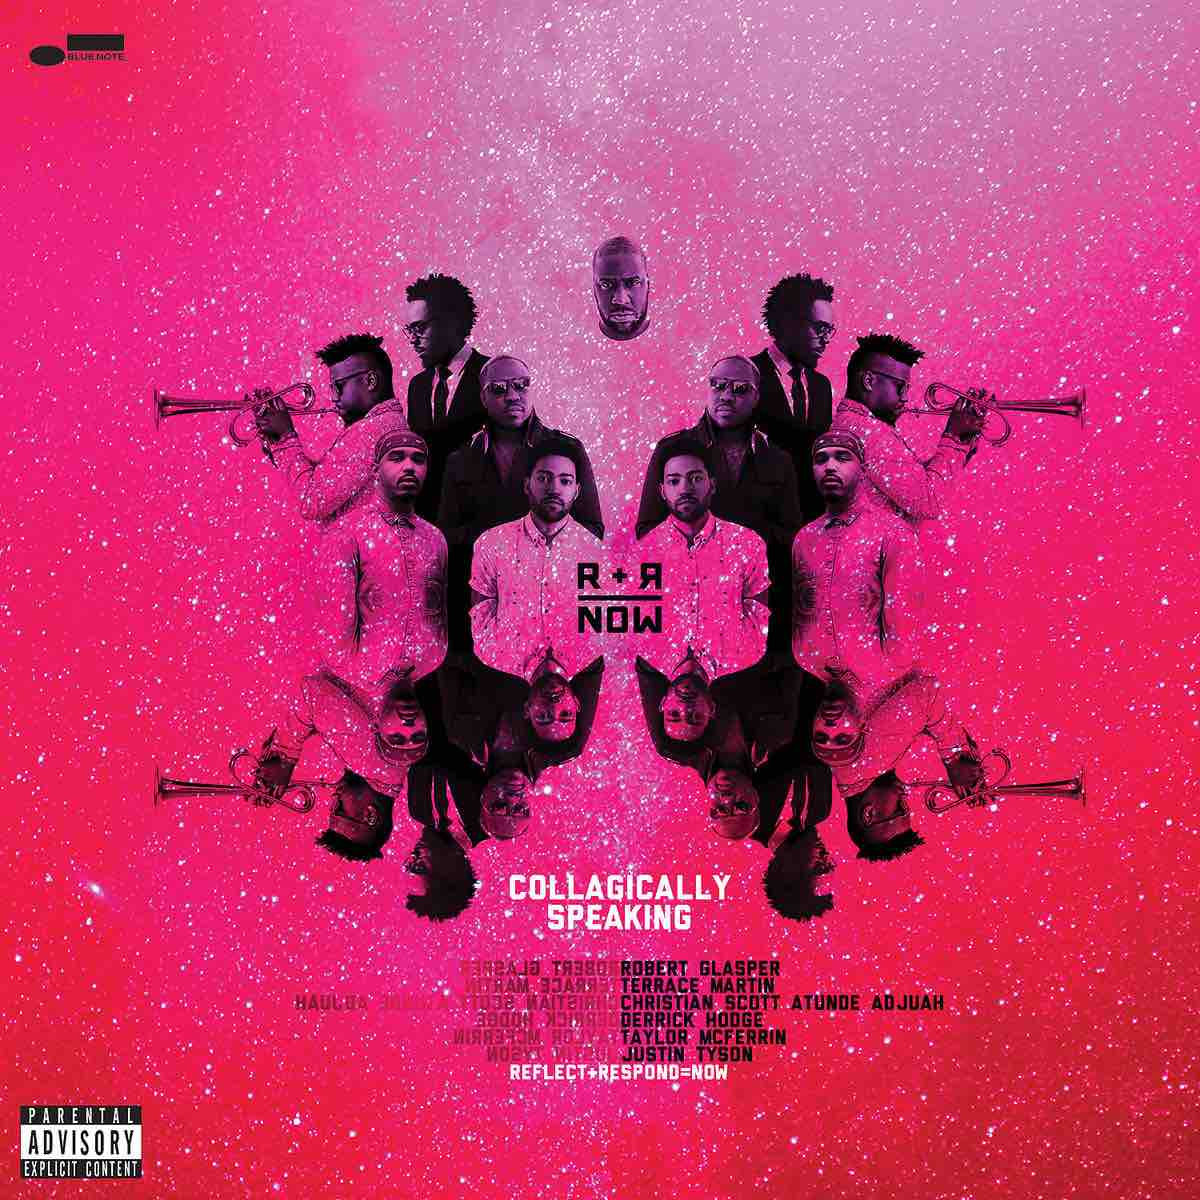 cover Glasper collagically